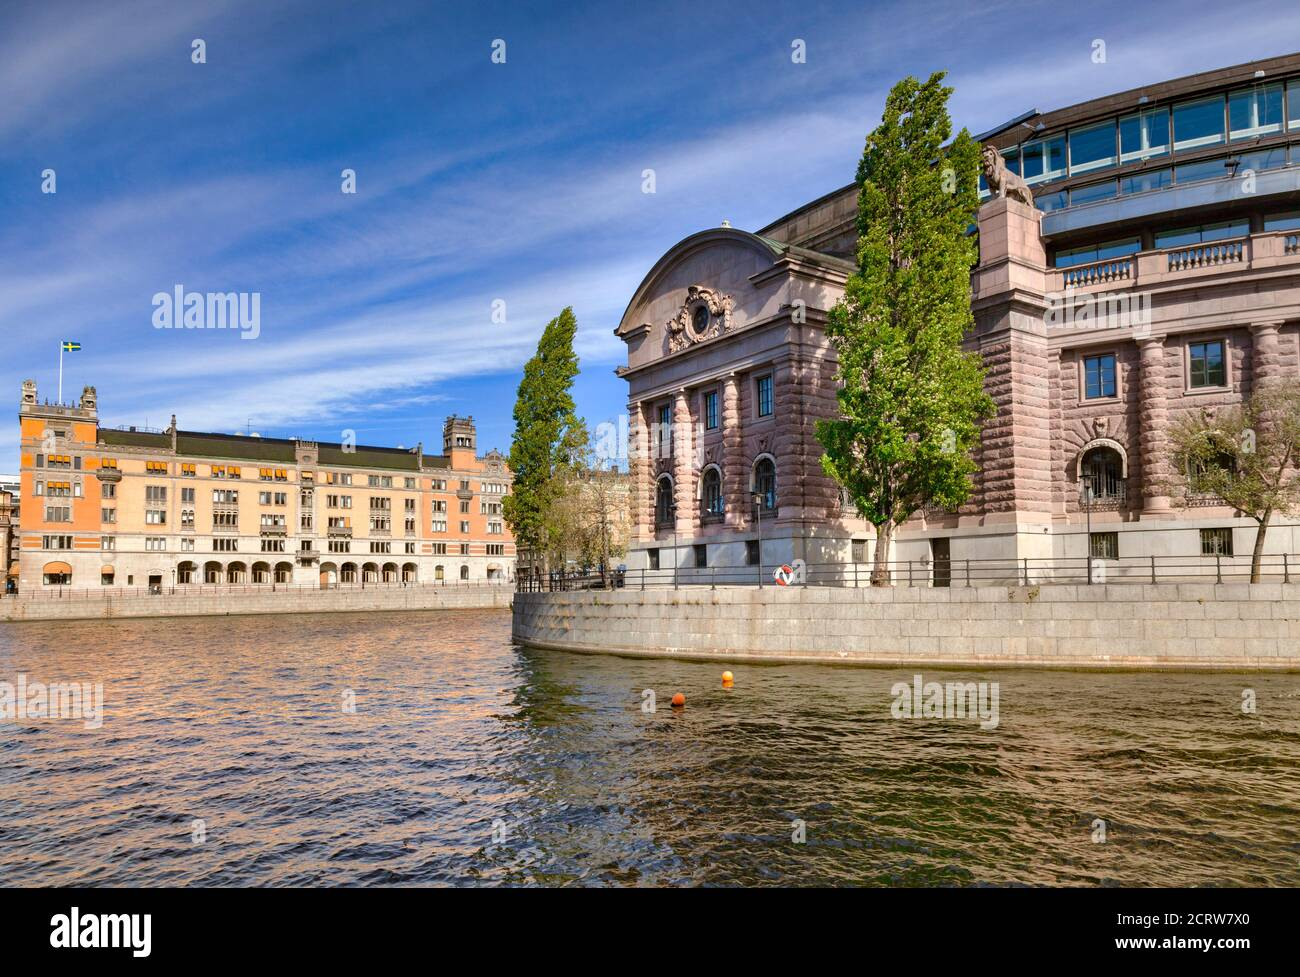 16 September 2018: Stockholm, Sweden - Parliament House beside the waterway Lilla Vartan on a sunny autumn day, with views across the water. Stock Photo